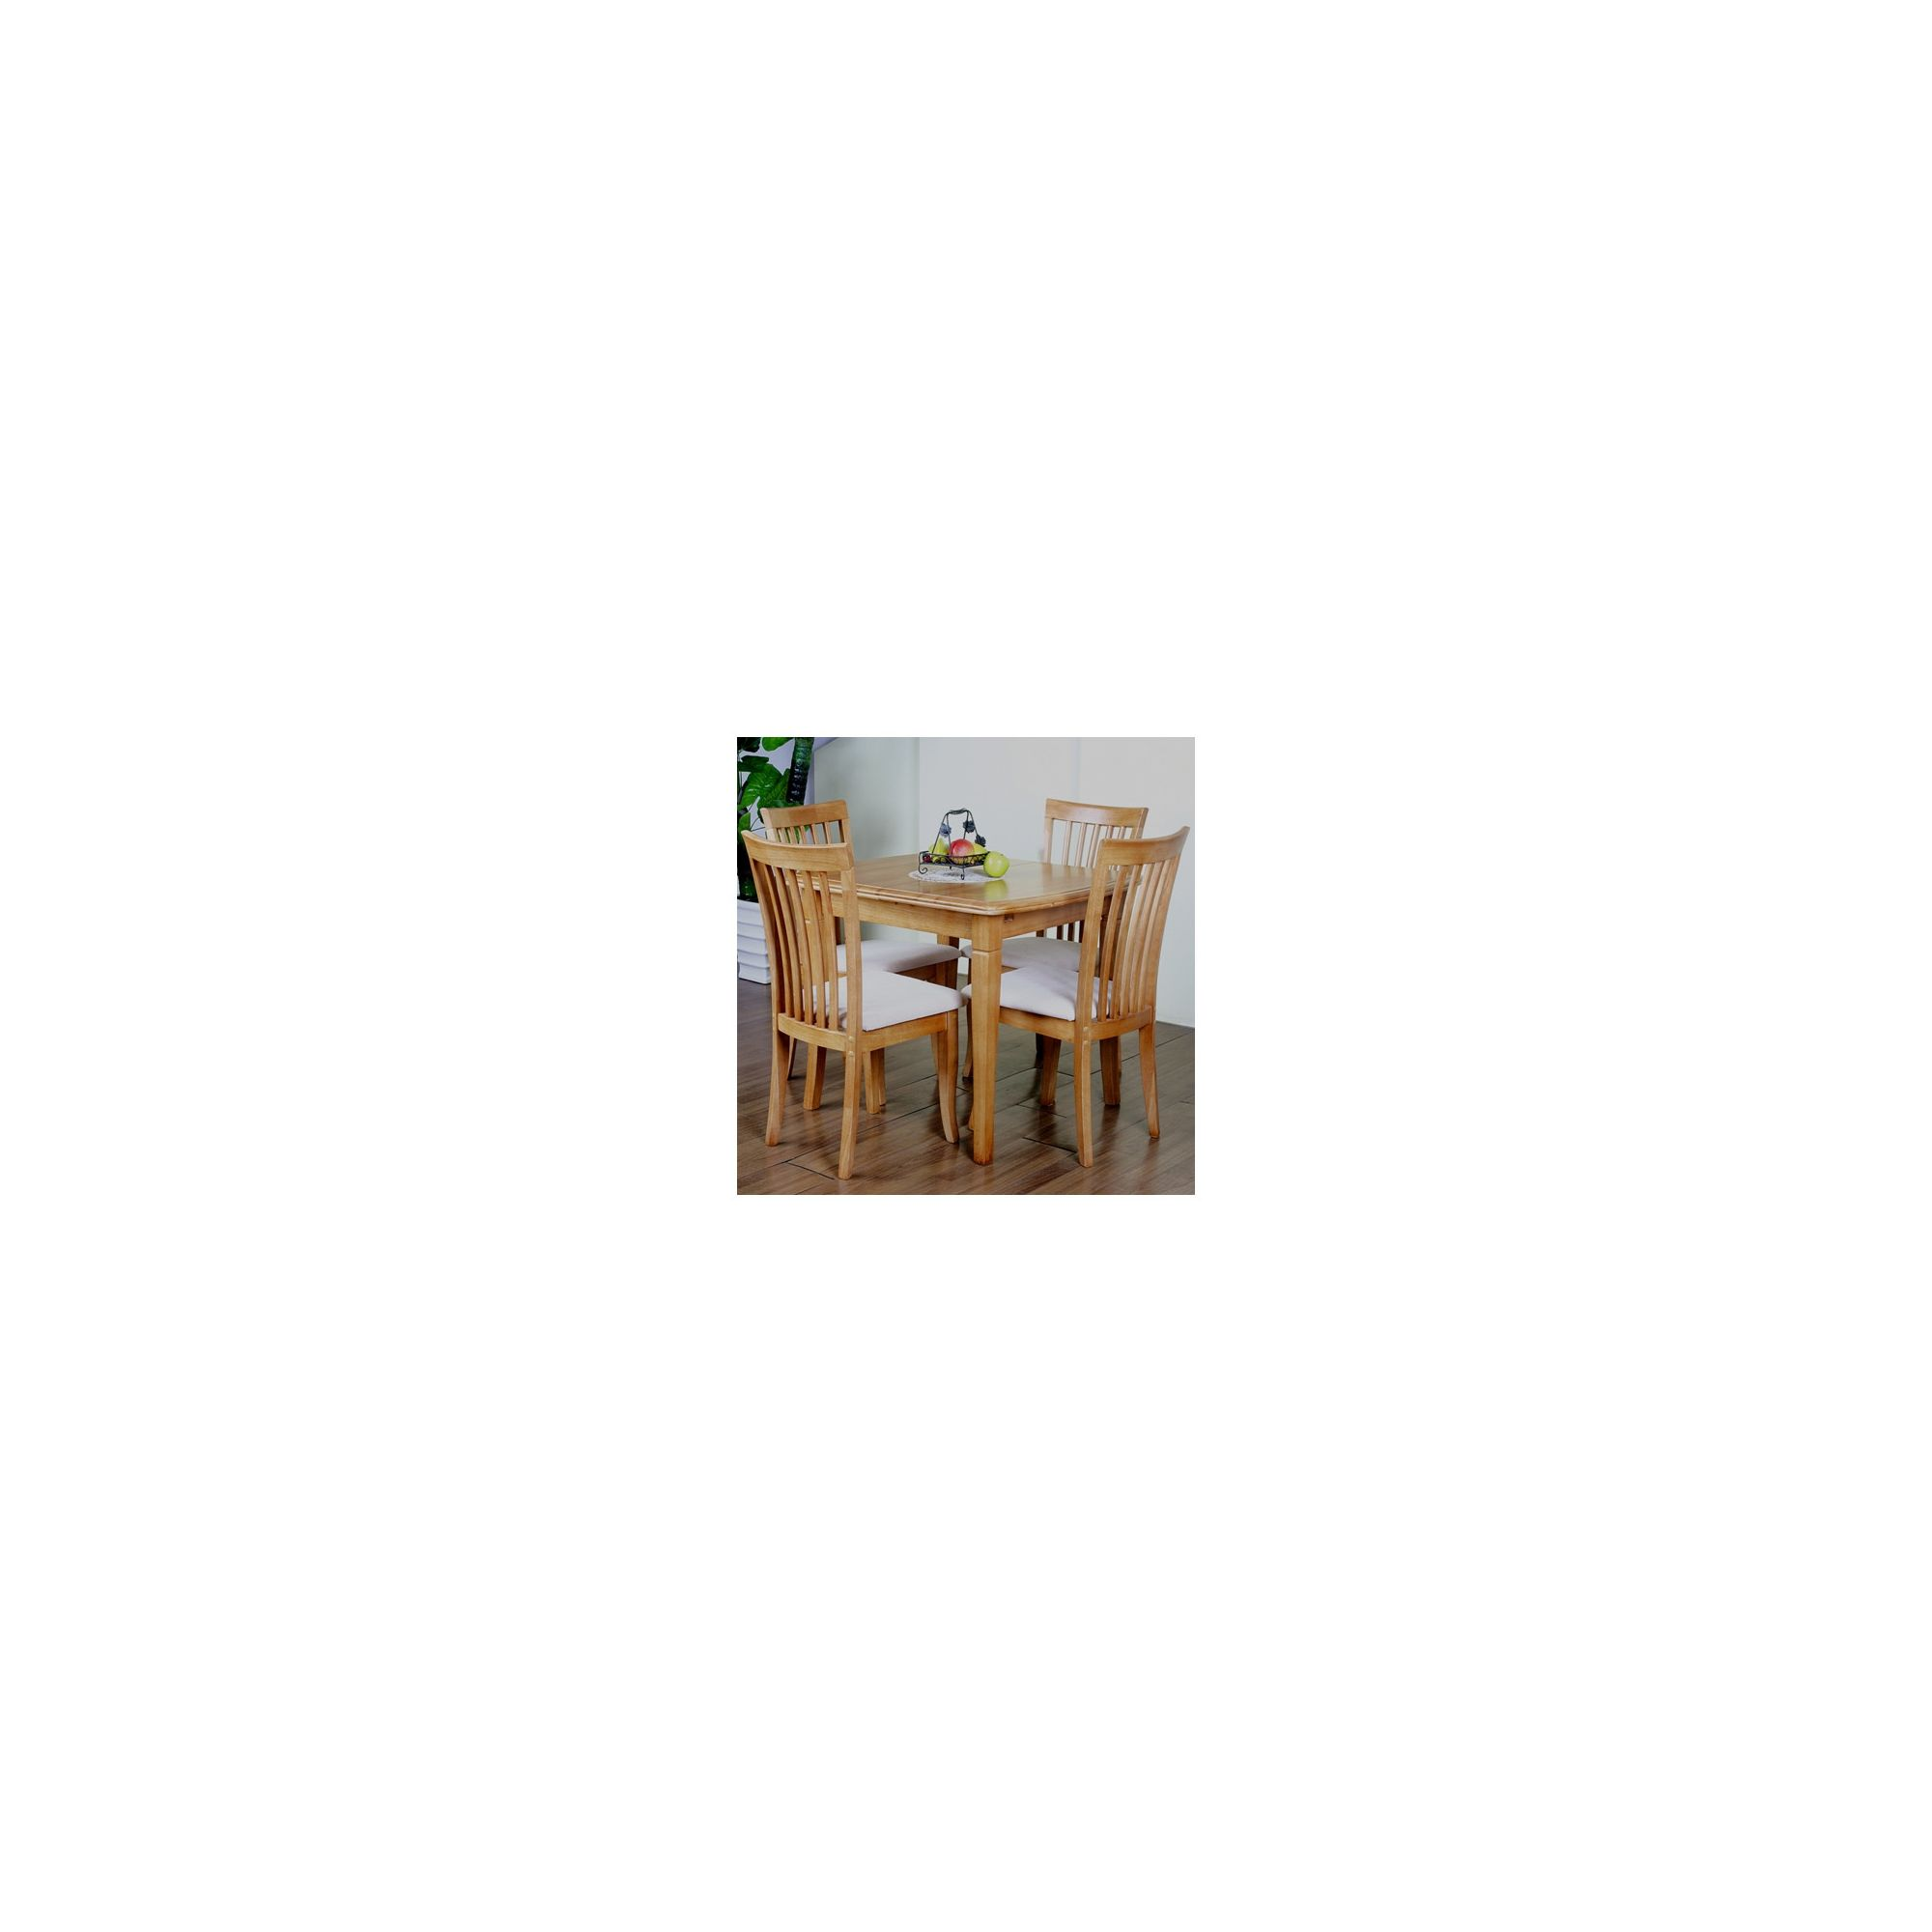 G&P Furniture Windsor House 5-Piece Lincoln Extending Dining Set - Maple at Tesco Direct